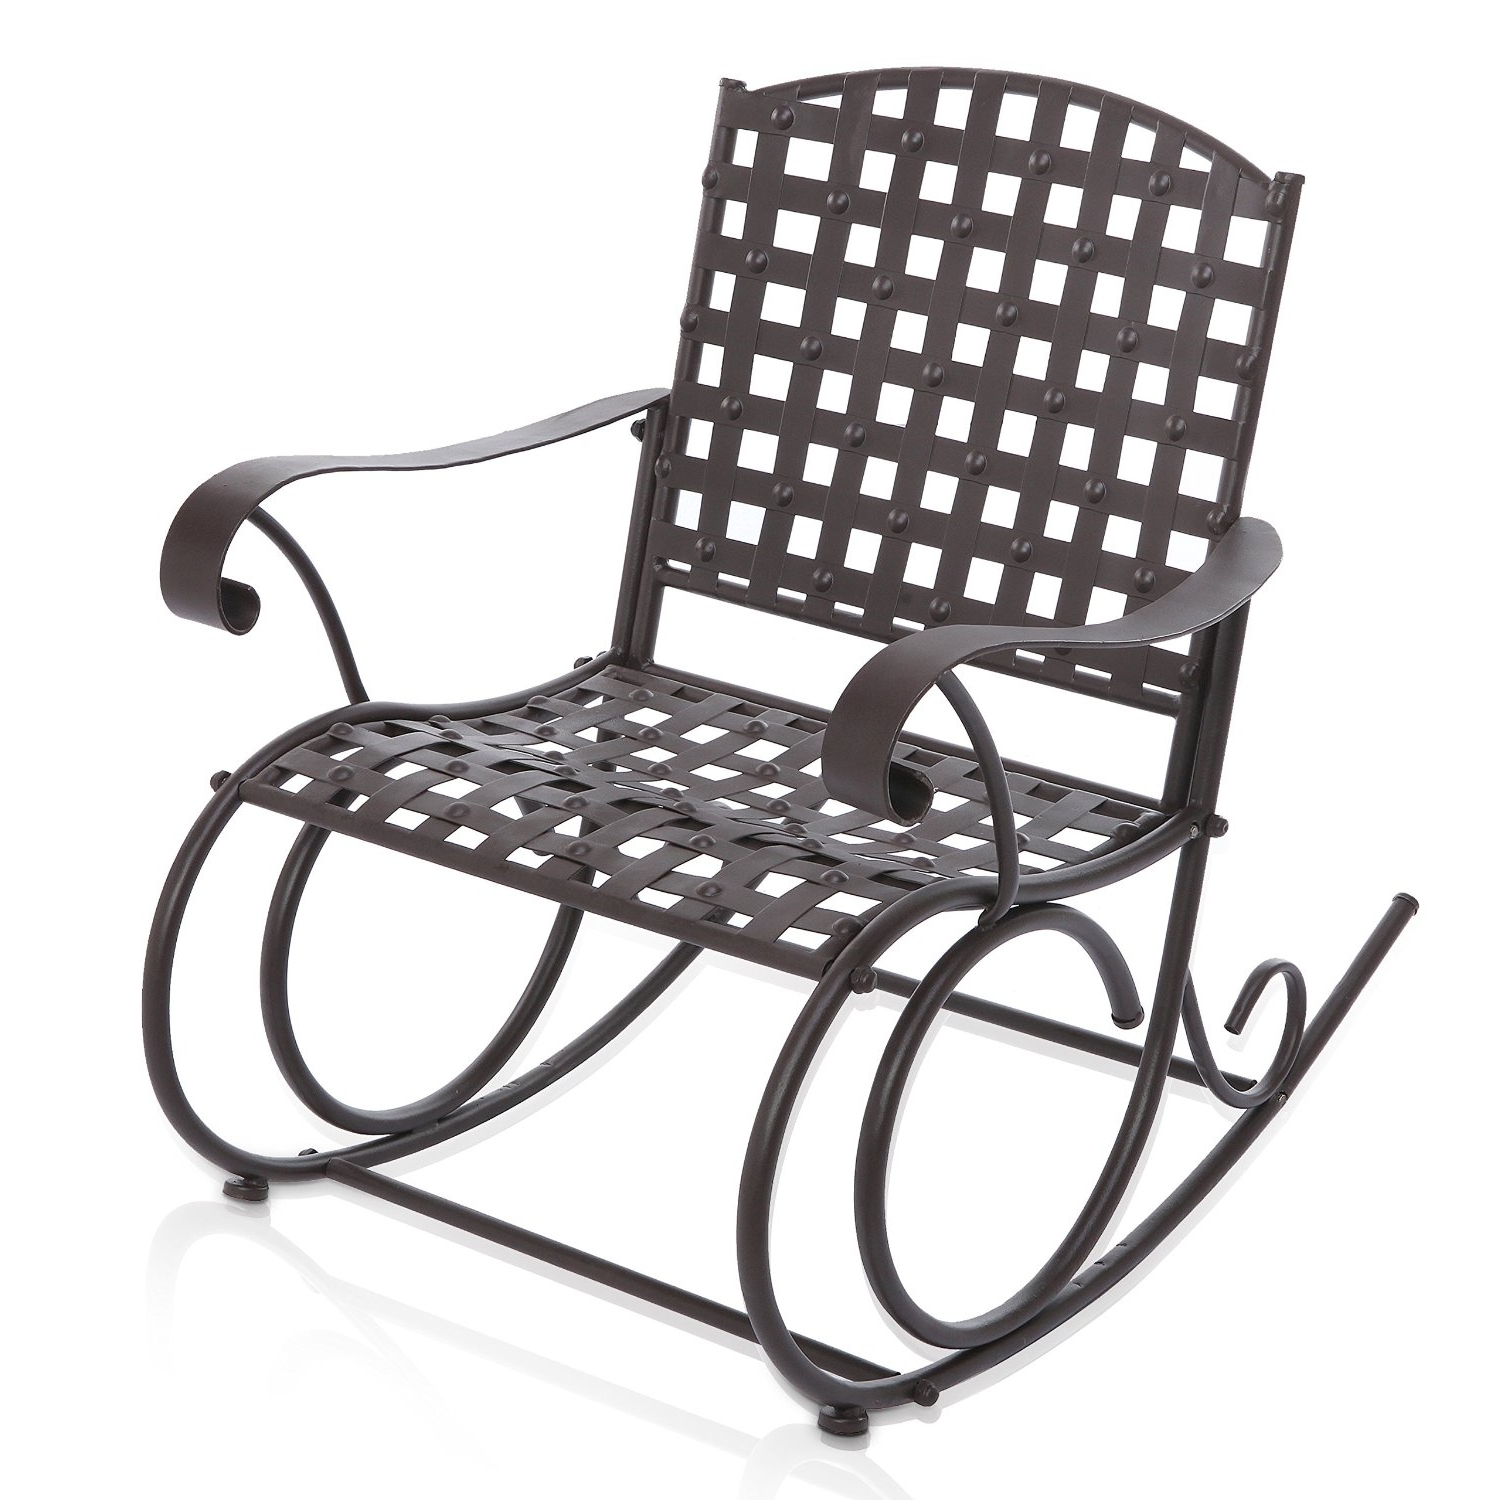 Outdoor Patio Metal Rocking Chairs Throughout Famous Buy Decorative Dark Brown Woven Metal Rocking Chair / Outdoor Patio (View 13 of 15)